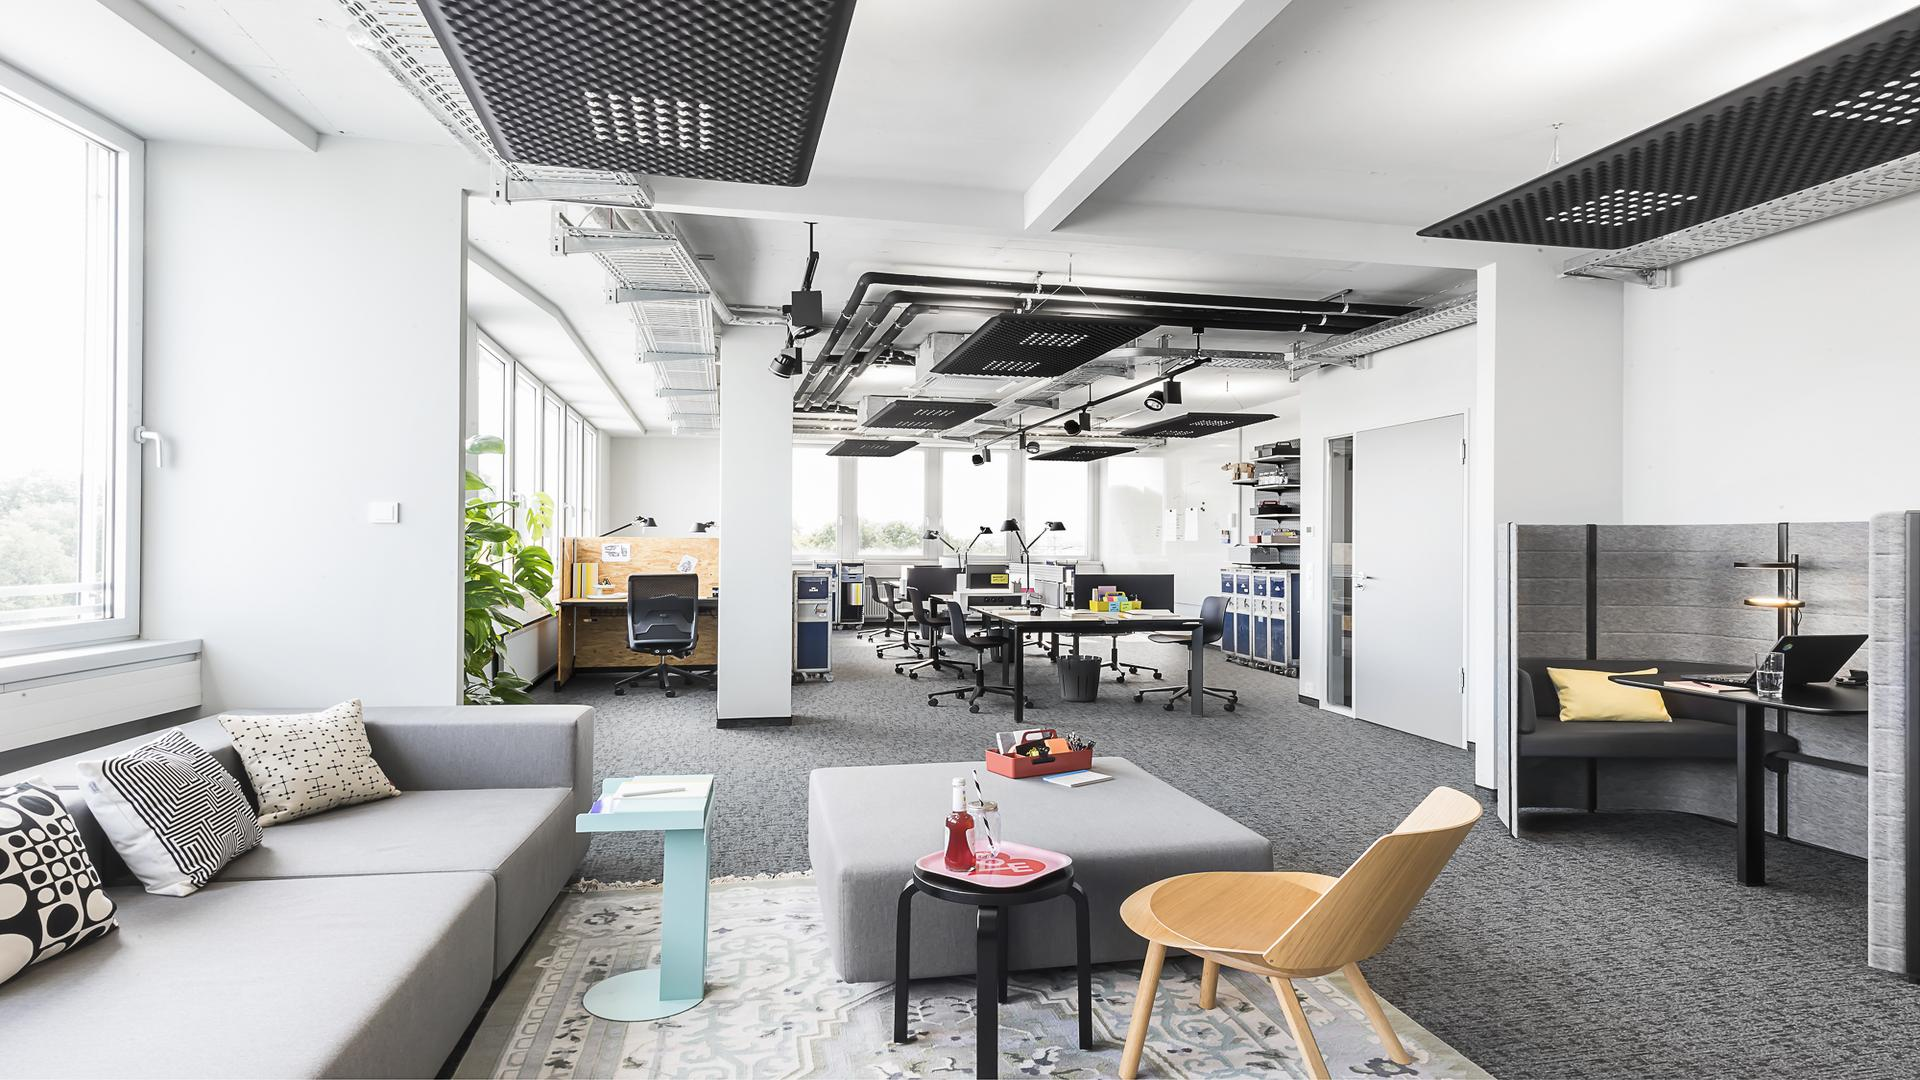 Loft Stuttgart Work Loft - Die Alternative Zum Großraumbüro I Design Offices